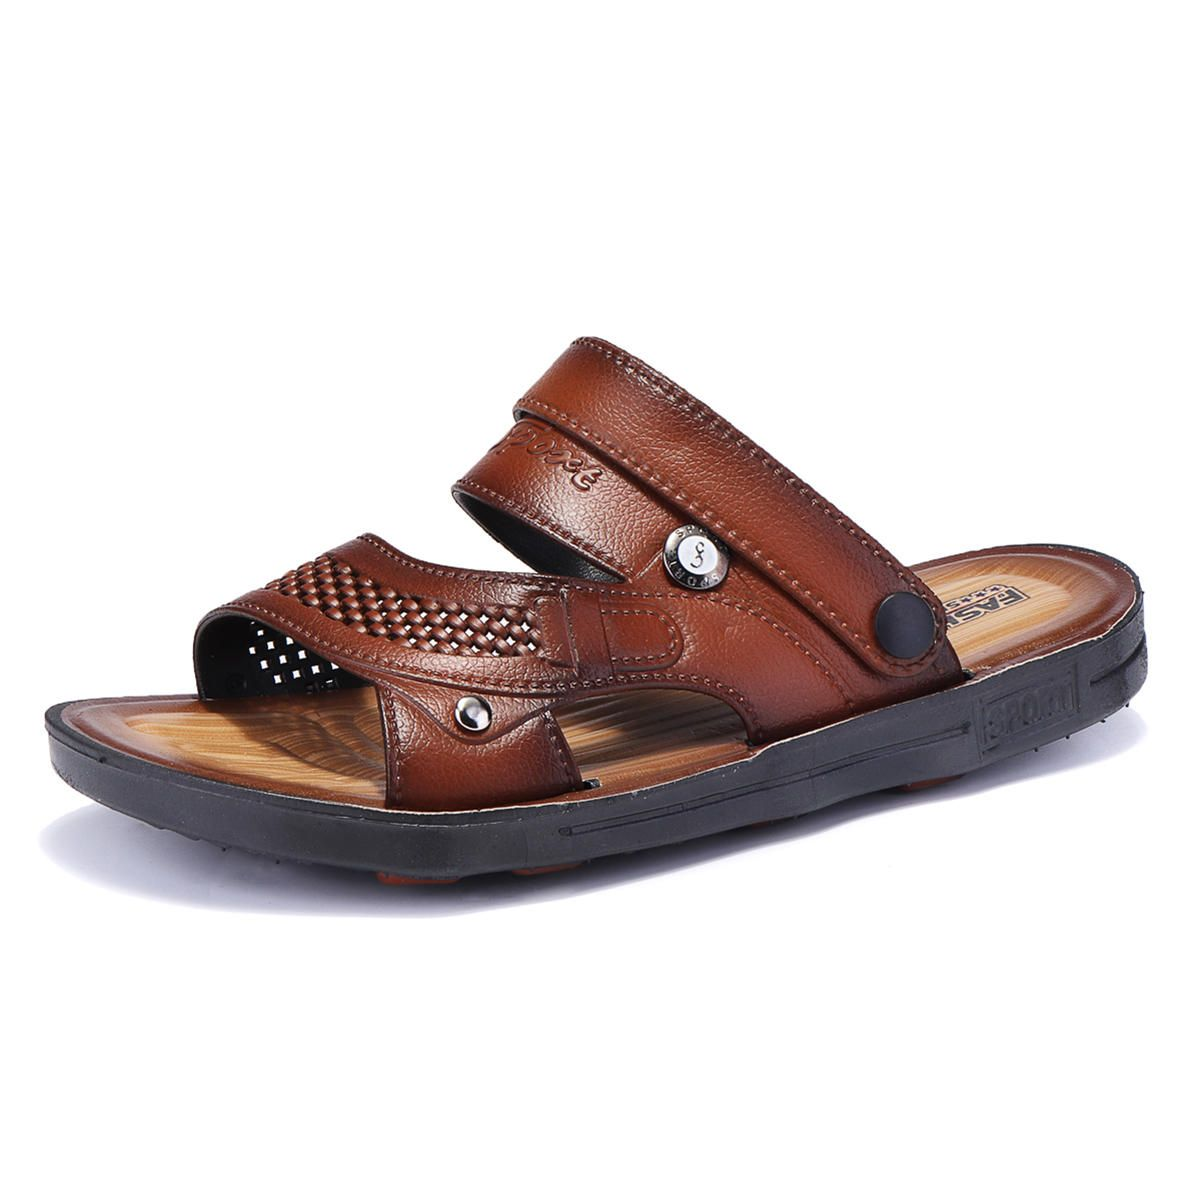 b8497cb4db7d2  US 27.99  Men Comfy Two Way Wear Leather Sandals Beach Slippers  comfy   wear  leather  sandals  beach  slippers